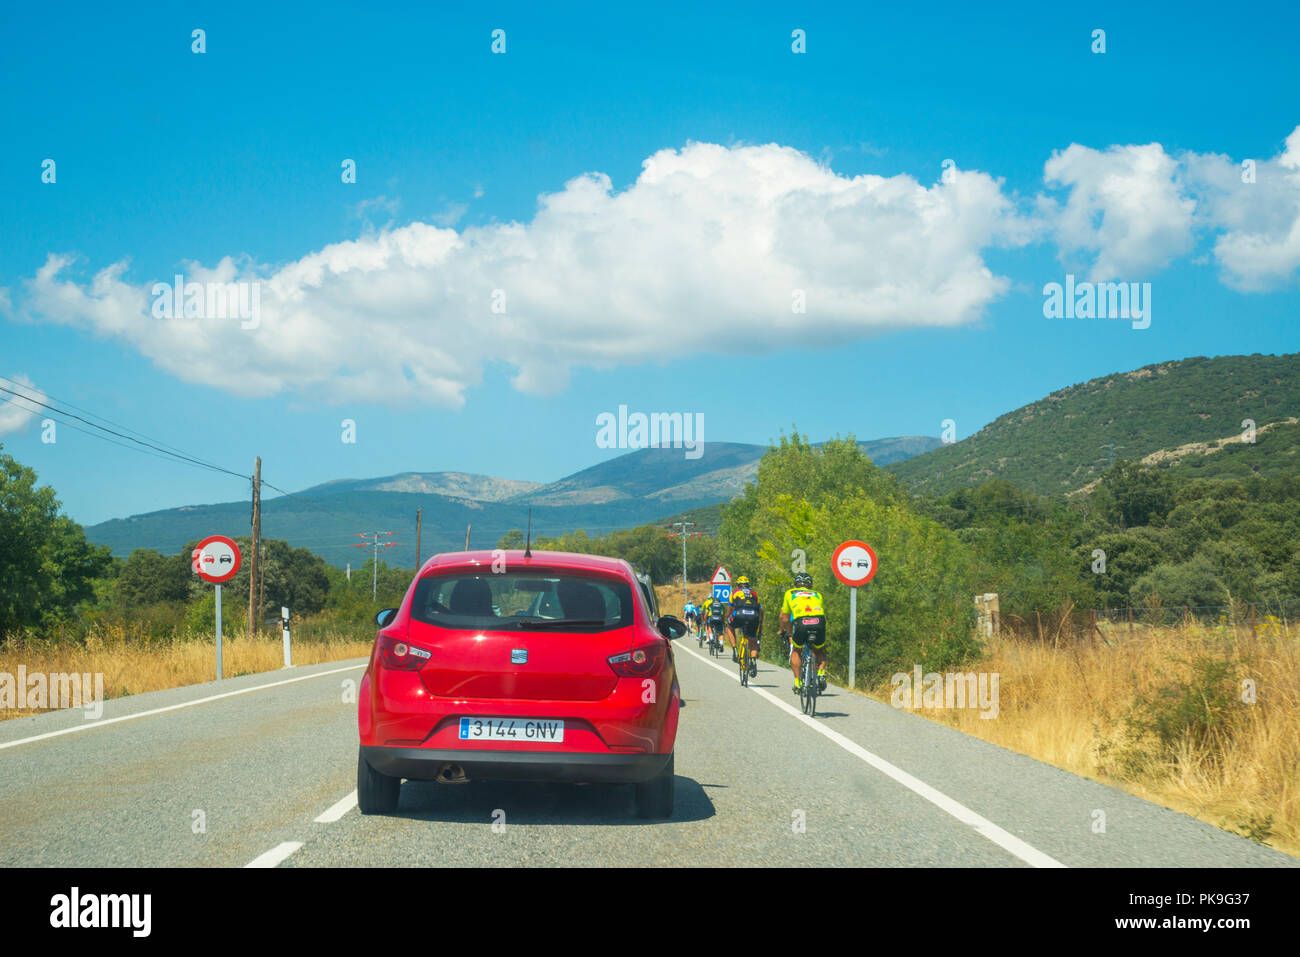 Car overtaking a group of ciclists. - Stock Image